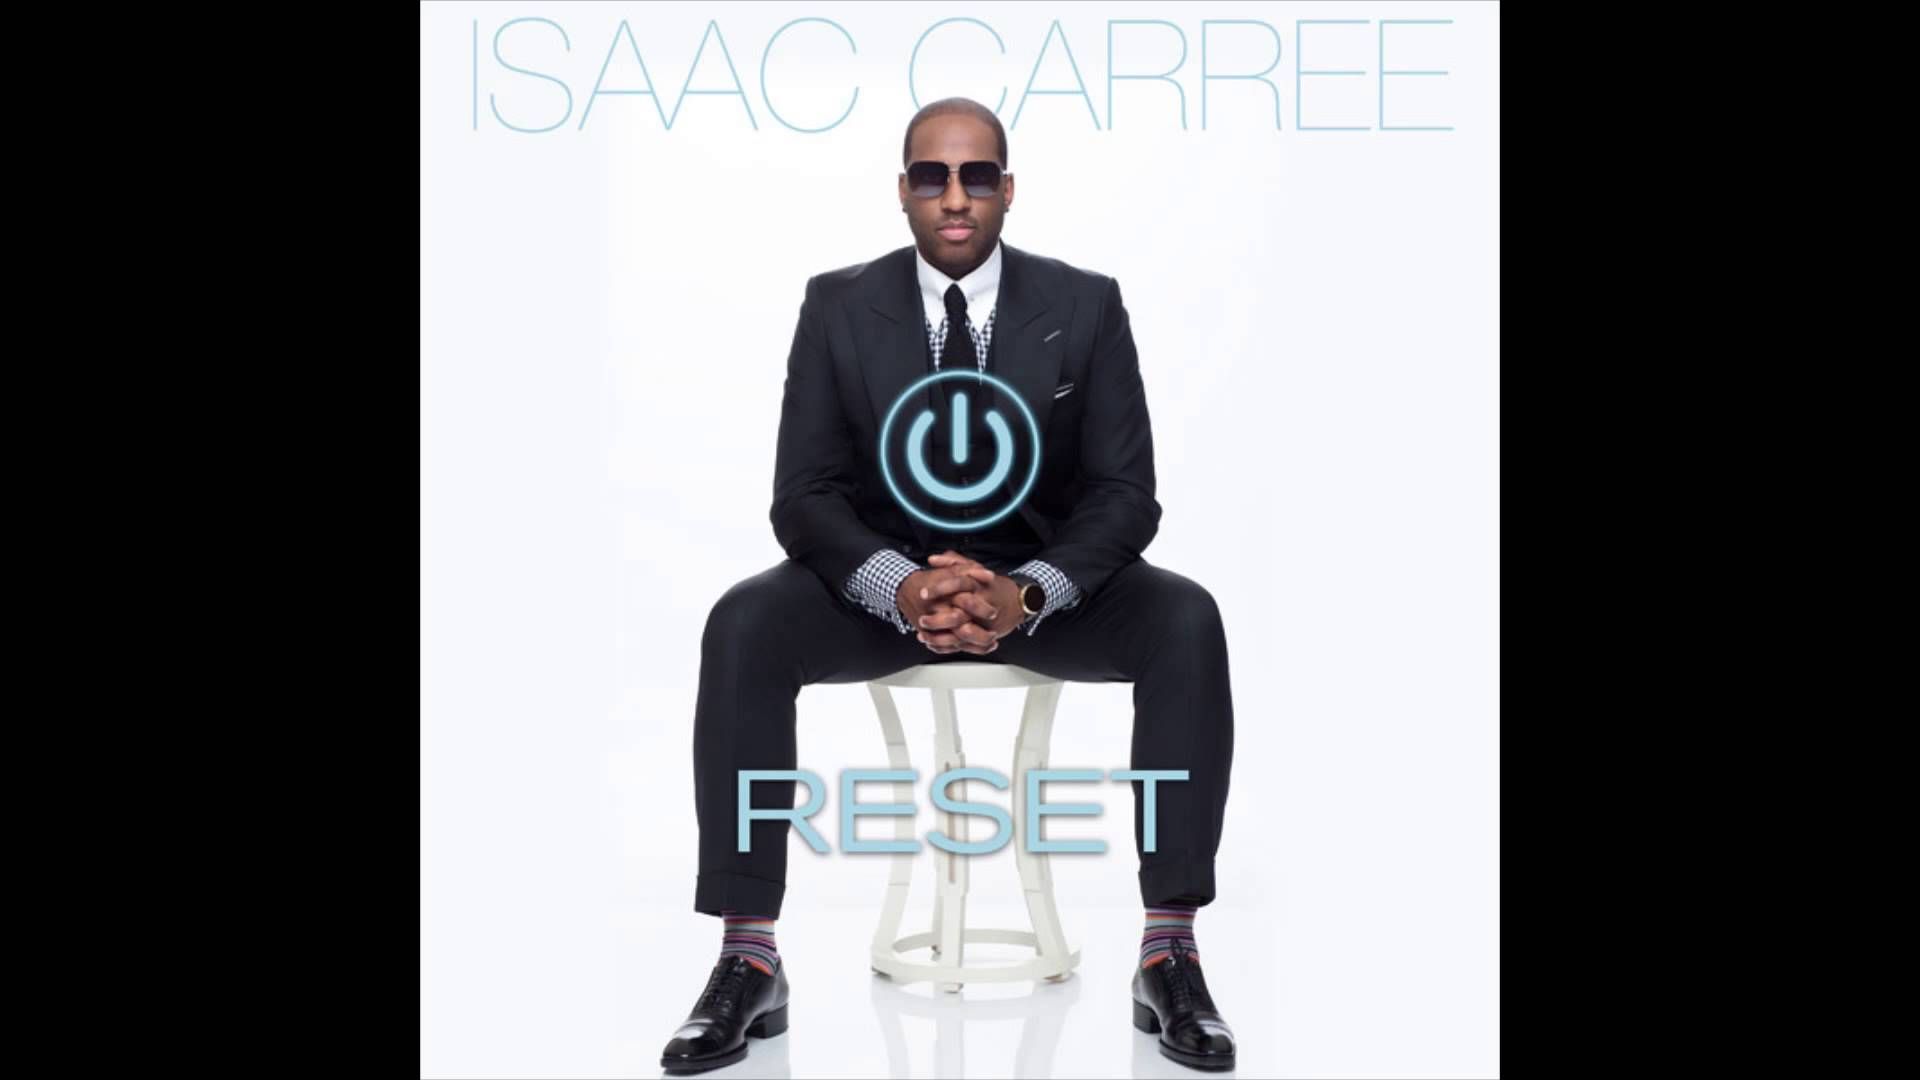 Isaac Carree feat. James Fortune – But God (Song, Lyrics and mp3 download)